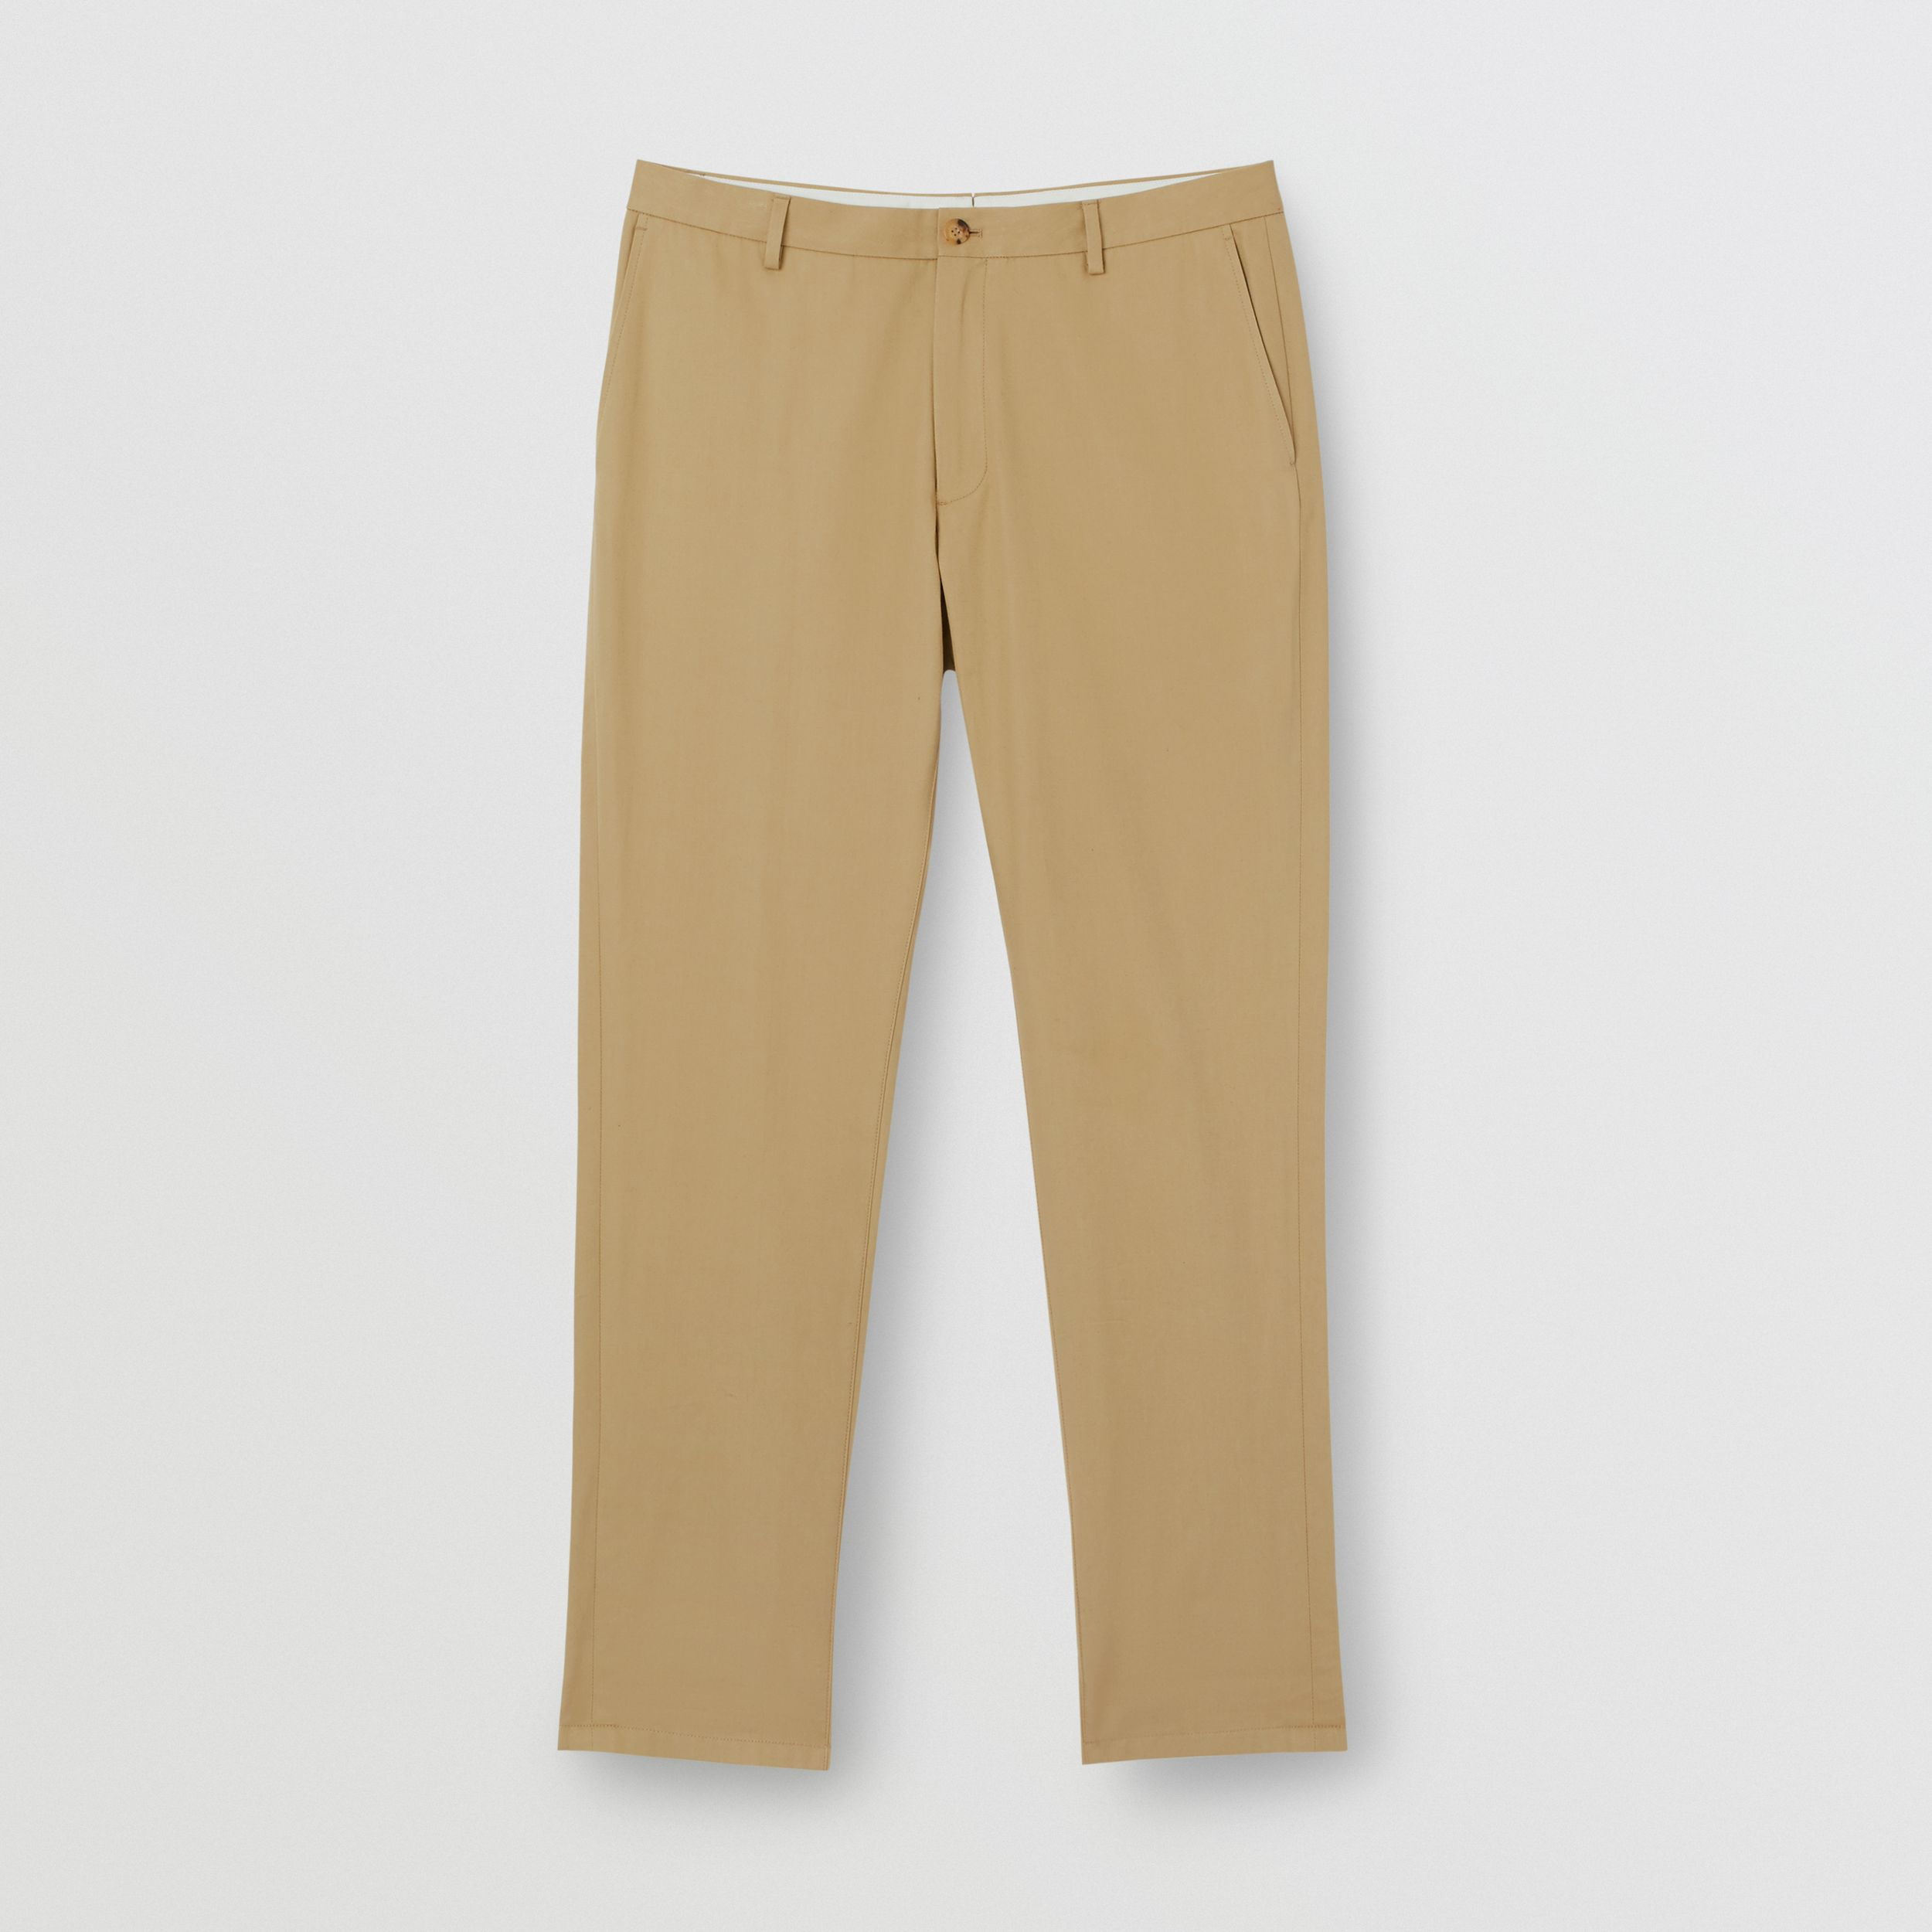 Slim Fit Cotton Chinos in Honey - Men | Burberry Canada - 4